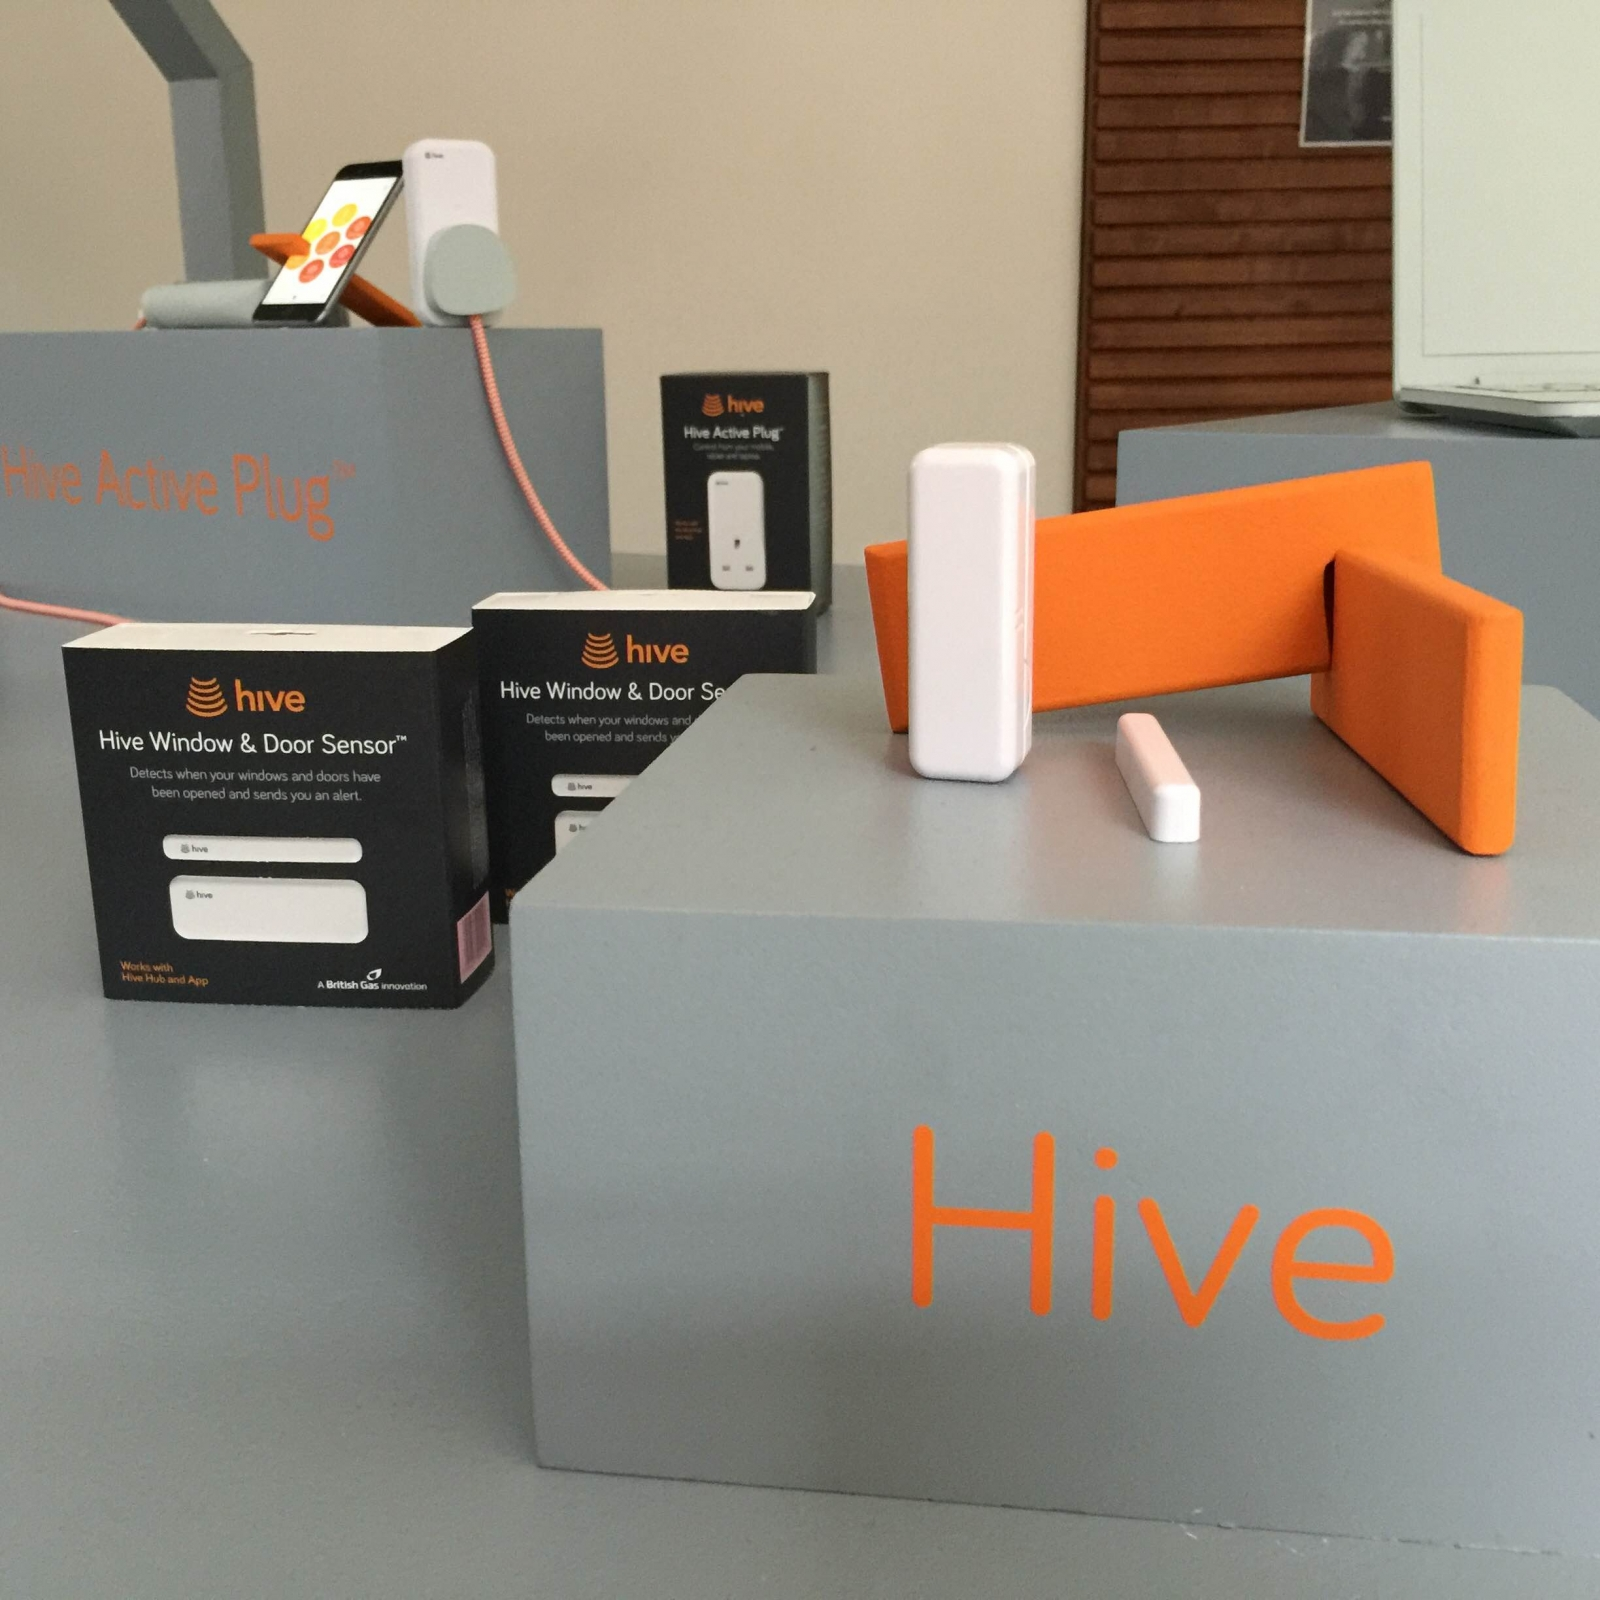 hive 2 begins major push by british gas into smart home. Black Bedroom Furniture Sets. Home Design Ideas